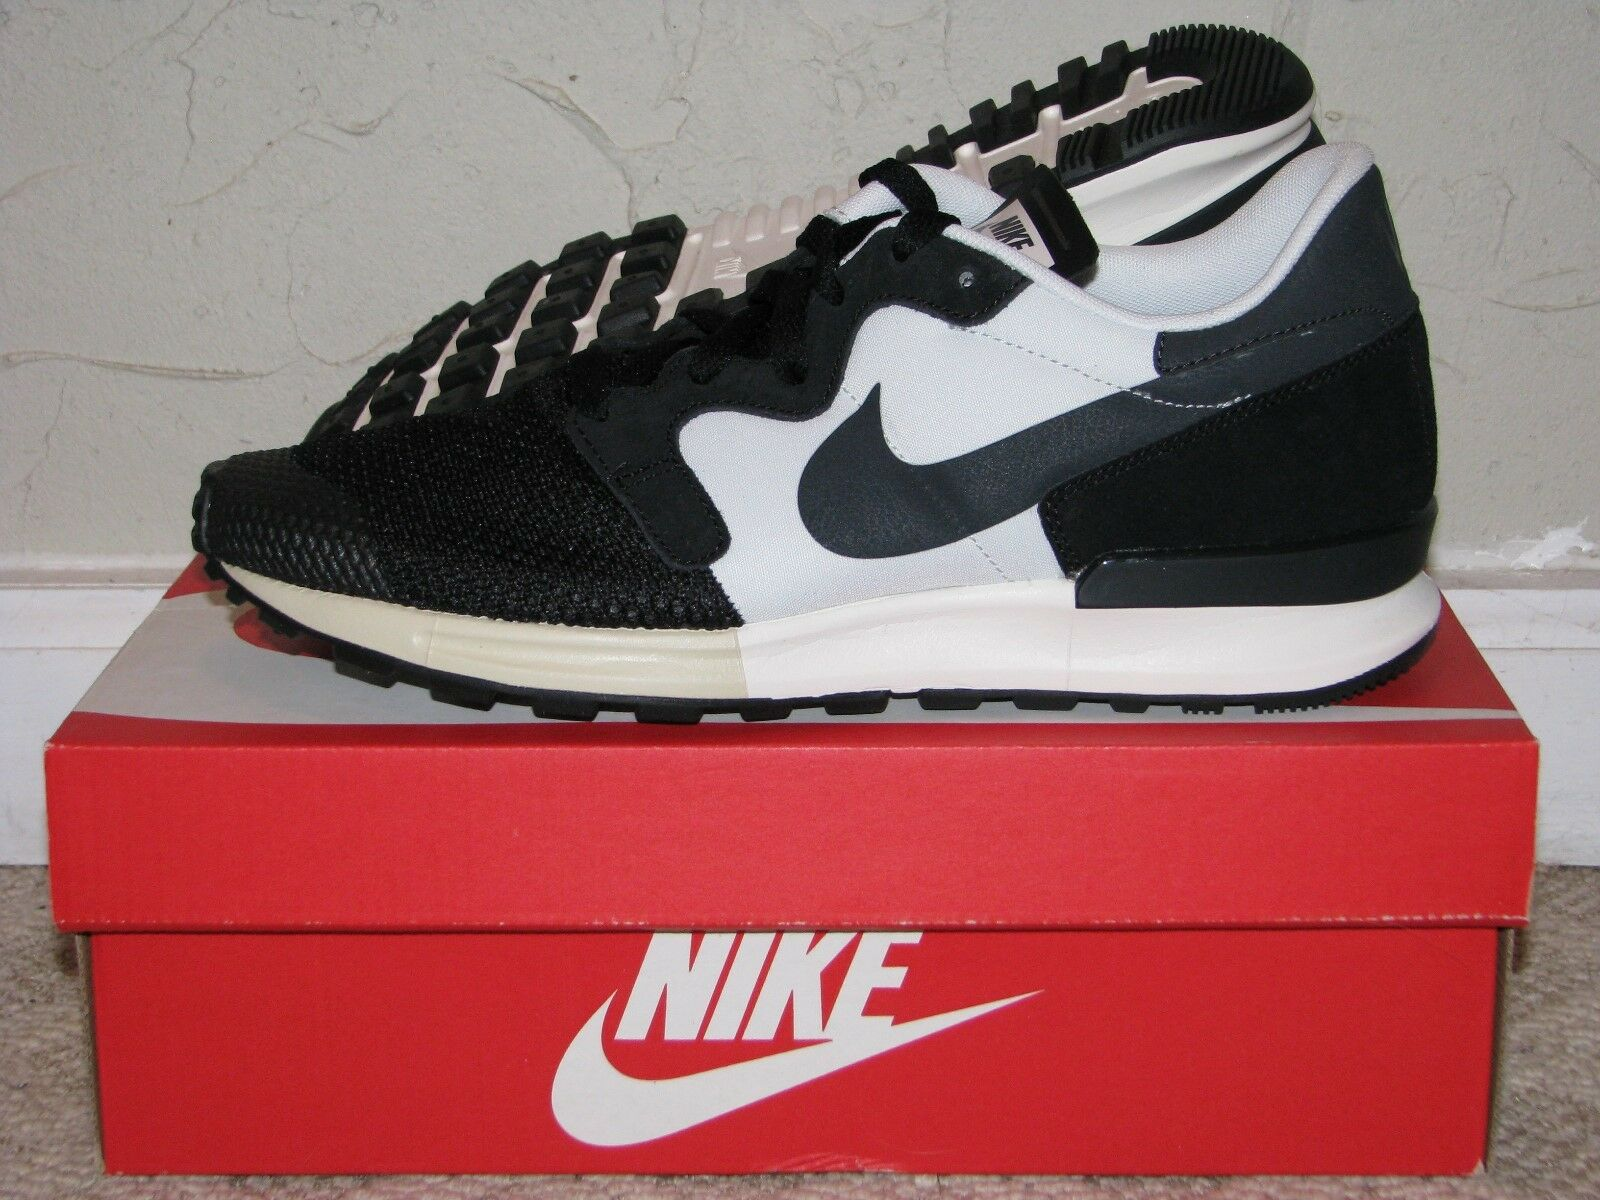 Nike Air Berwuda Black   Off White Mens Size 10 DS NEW  555305-003